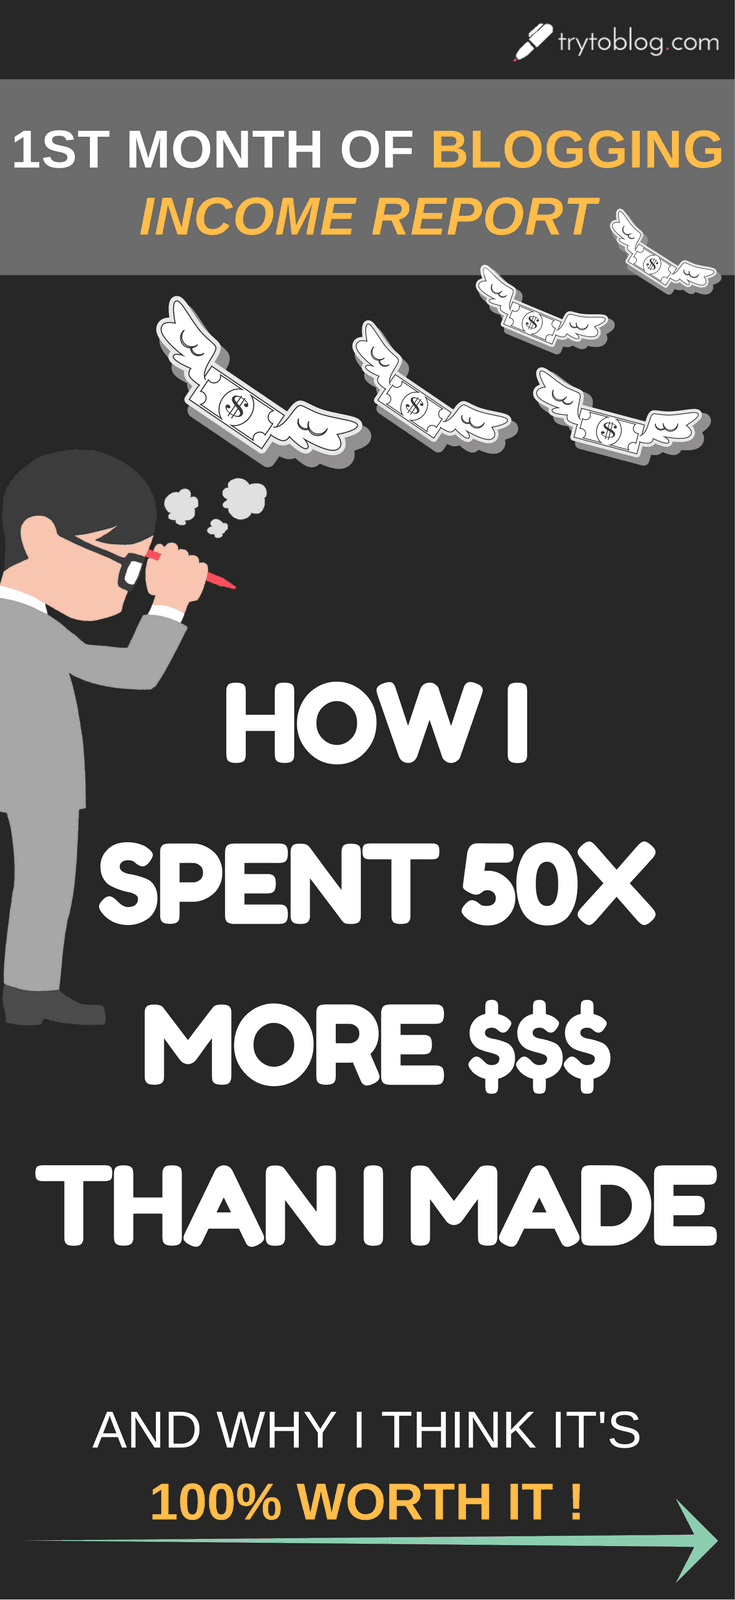 In my first month of blogging, I LOST 50X MORE MONEY THAN 'VE MADE! But I'm happy about it! Read the post to see all my expenses, incomes and lessons that I've learned in my first month of blogging!